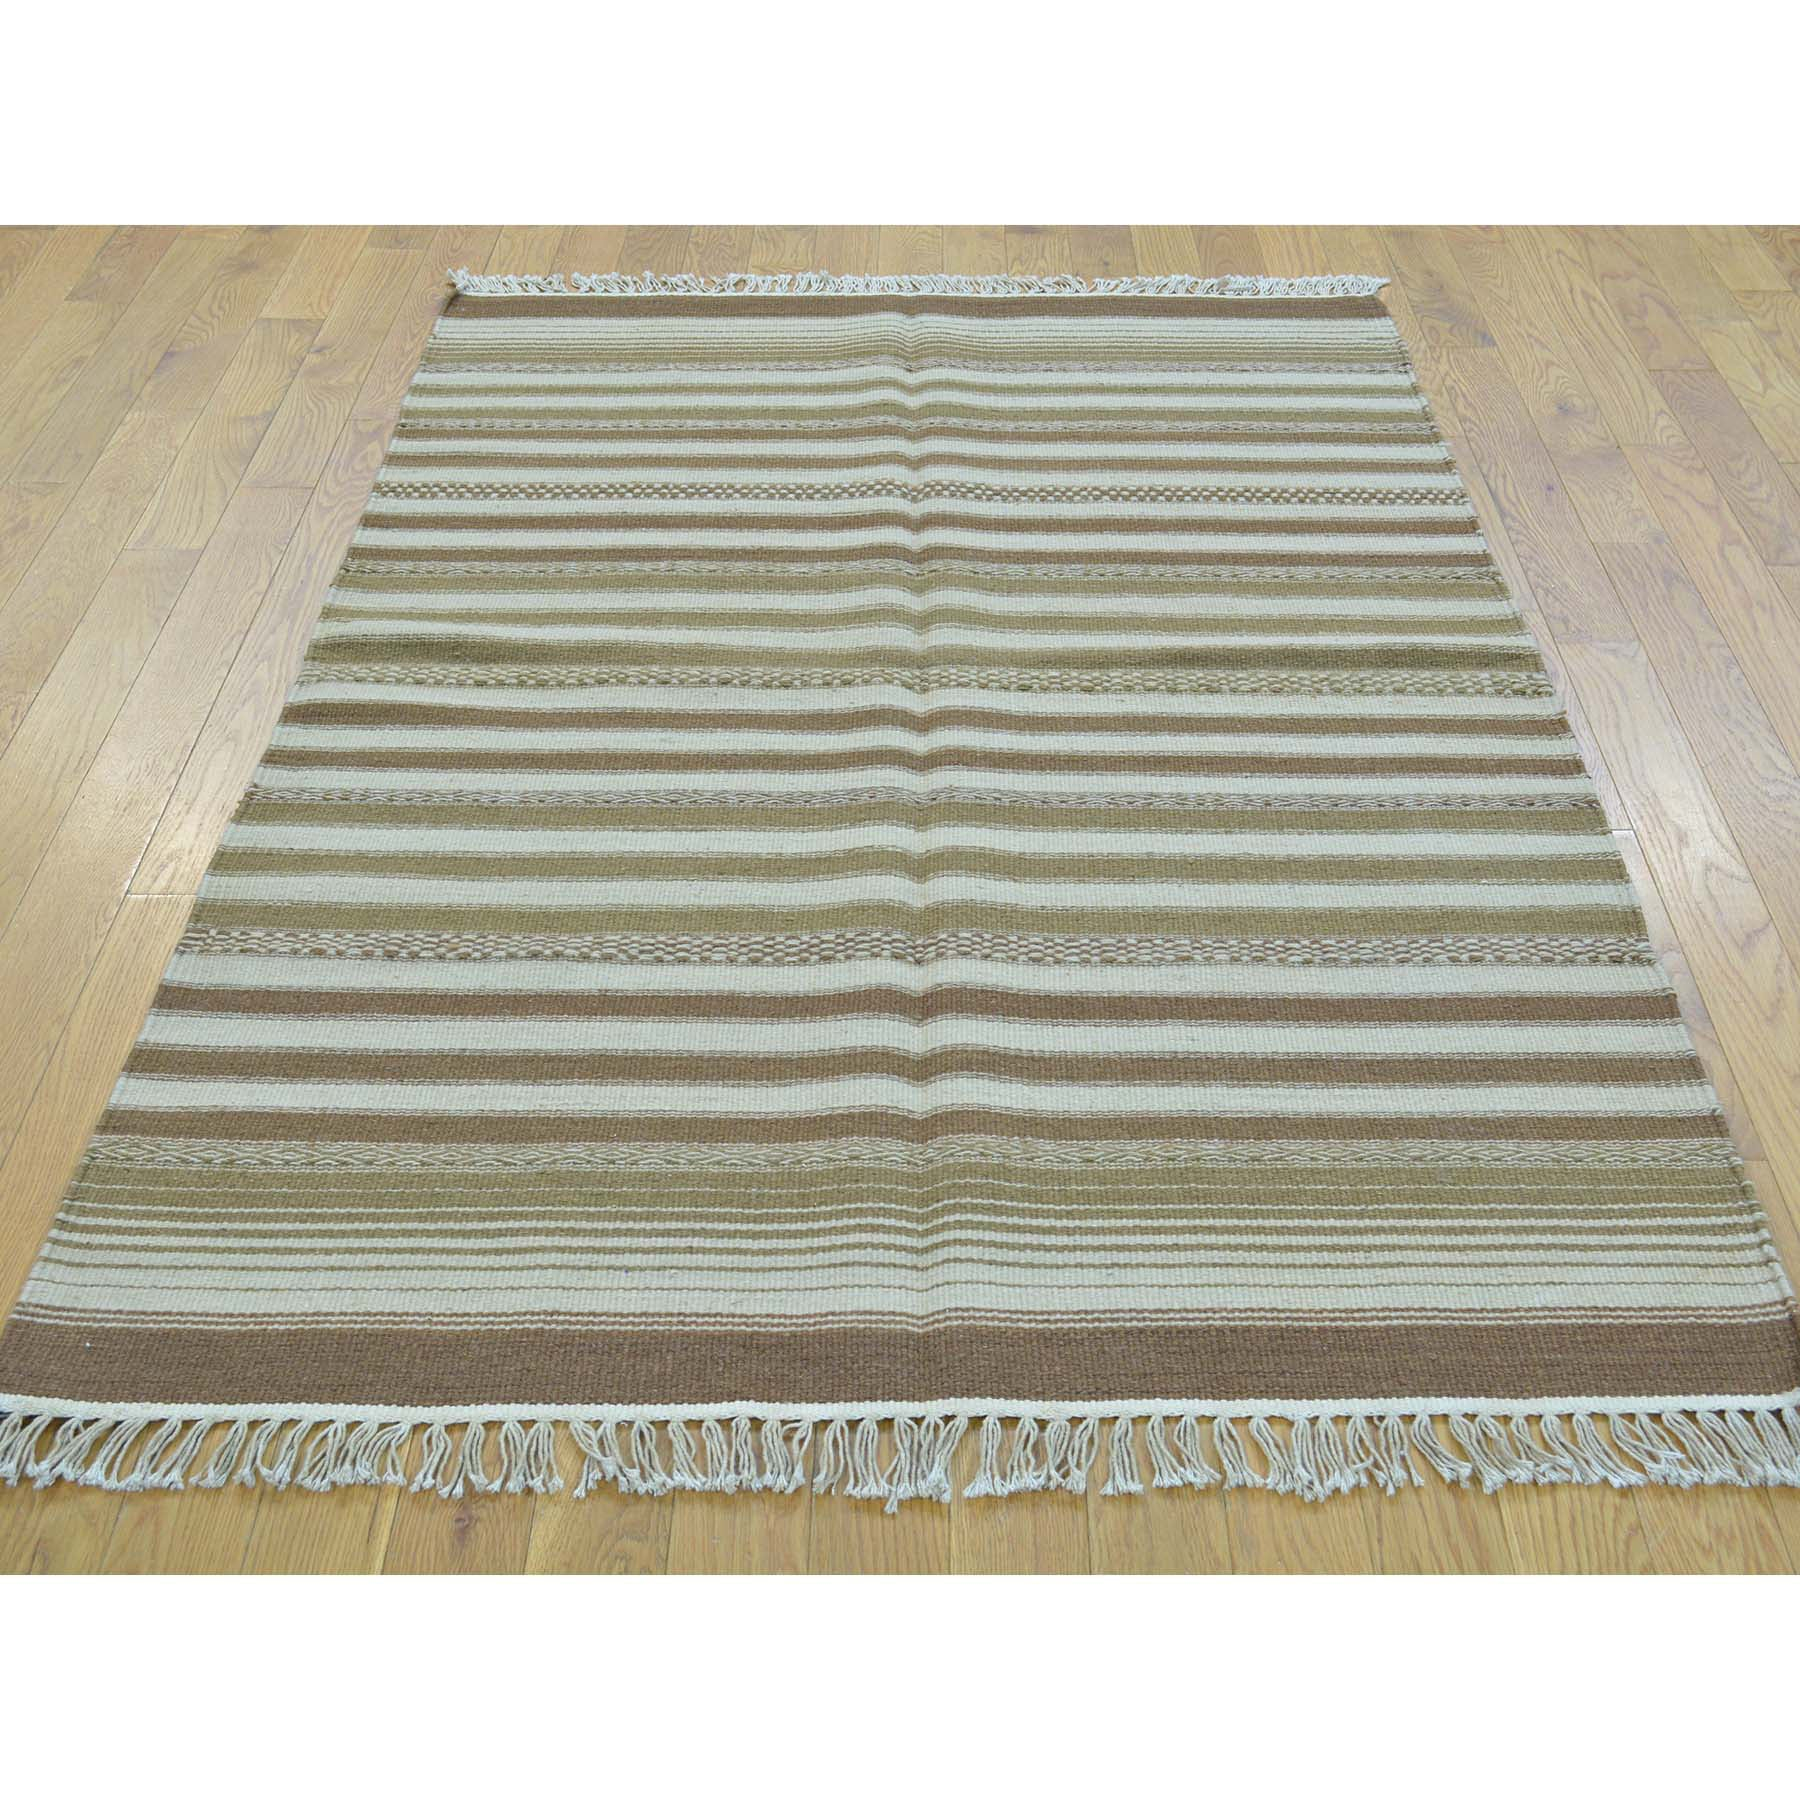 "Handmade Flat Weave Rectangle Rug > Design# SH30019 > Size: 3'-10"" x 5'-10"" [ONLINE ONLY]"